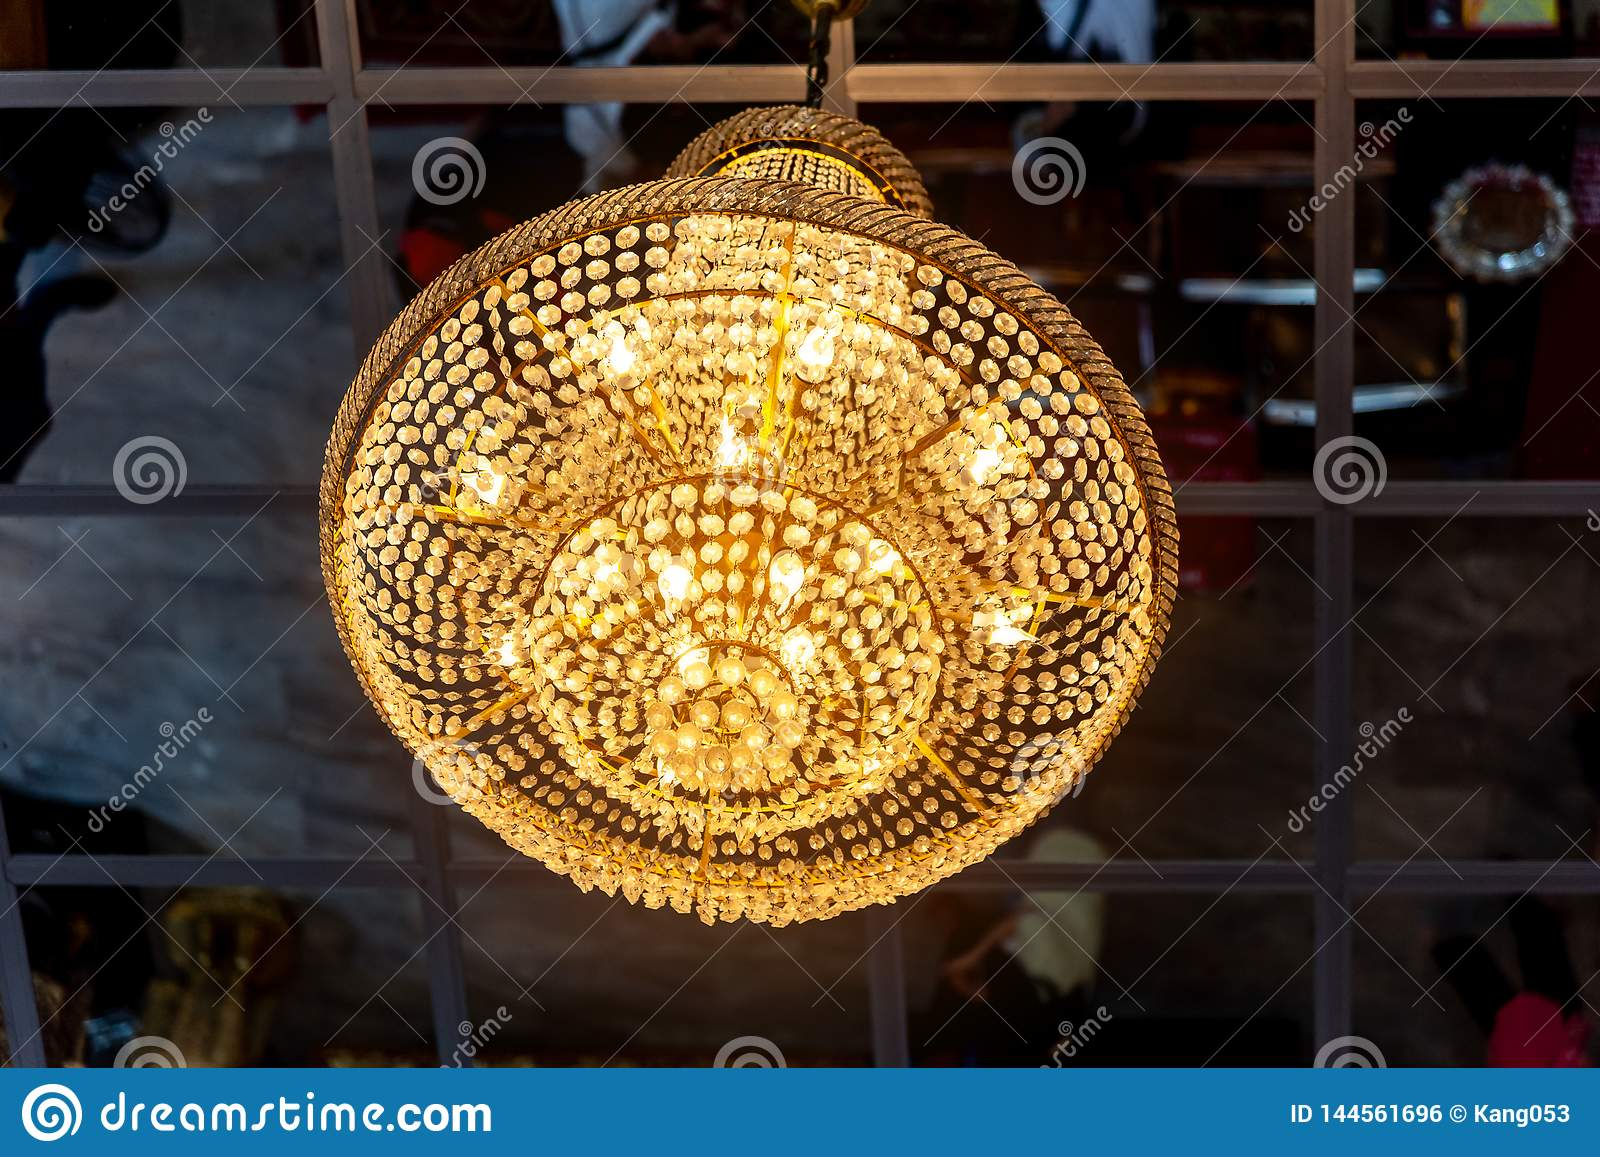 Round Ceiling Lamp Modern Hanging Lighting Fixtures Decorative Round Chandelier In Dining Room At Home Interior Design Stock Photo Image Of Background Hang 144561696